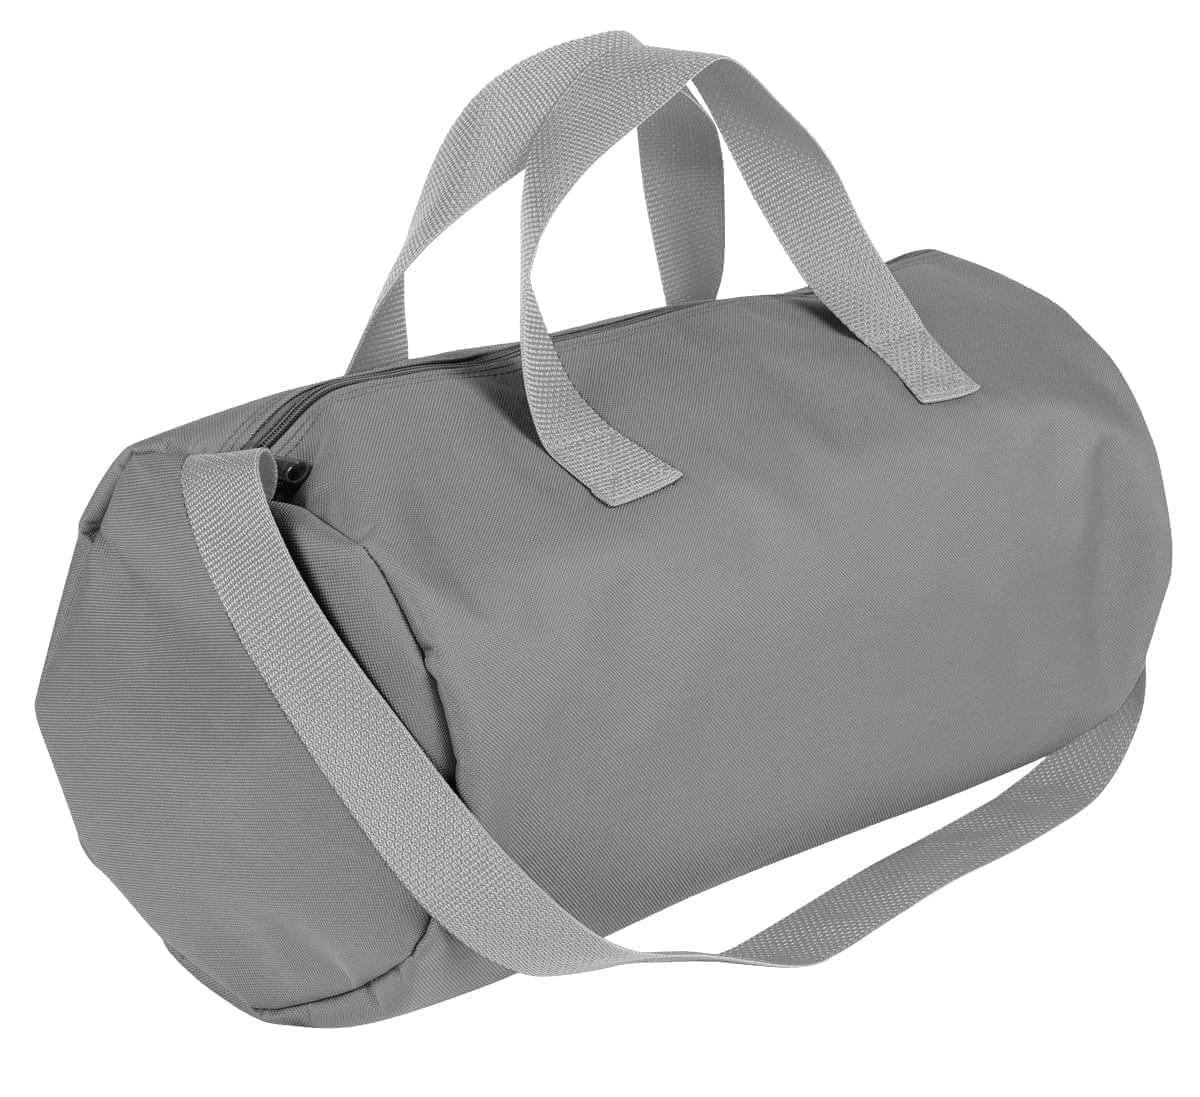 USA Made Nylon Poly Gym Roll Bags, Grey-Grey, ROCX31AA1U